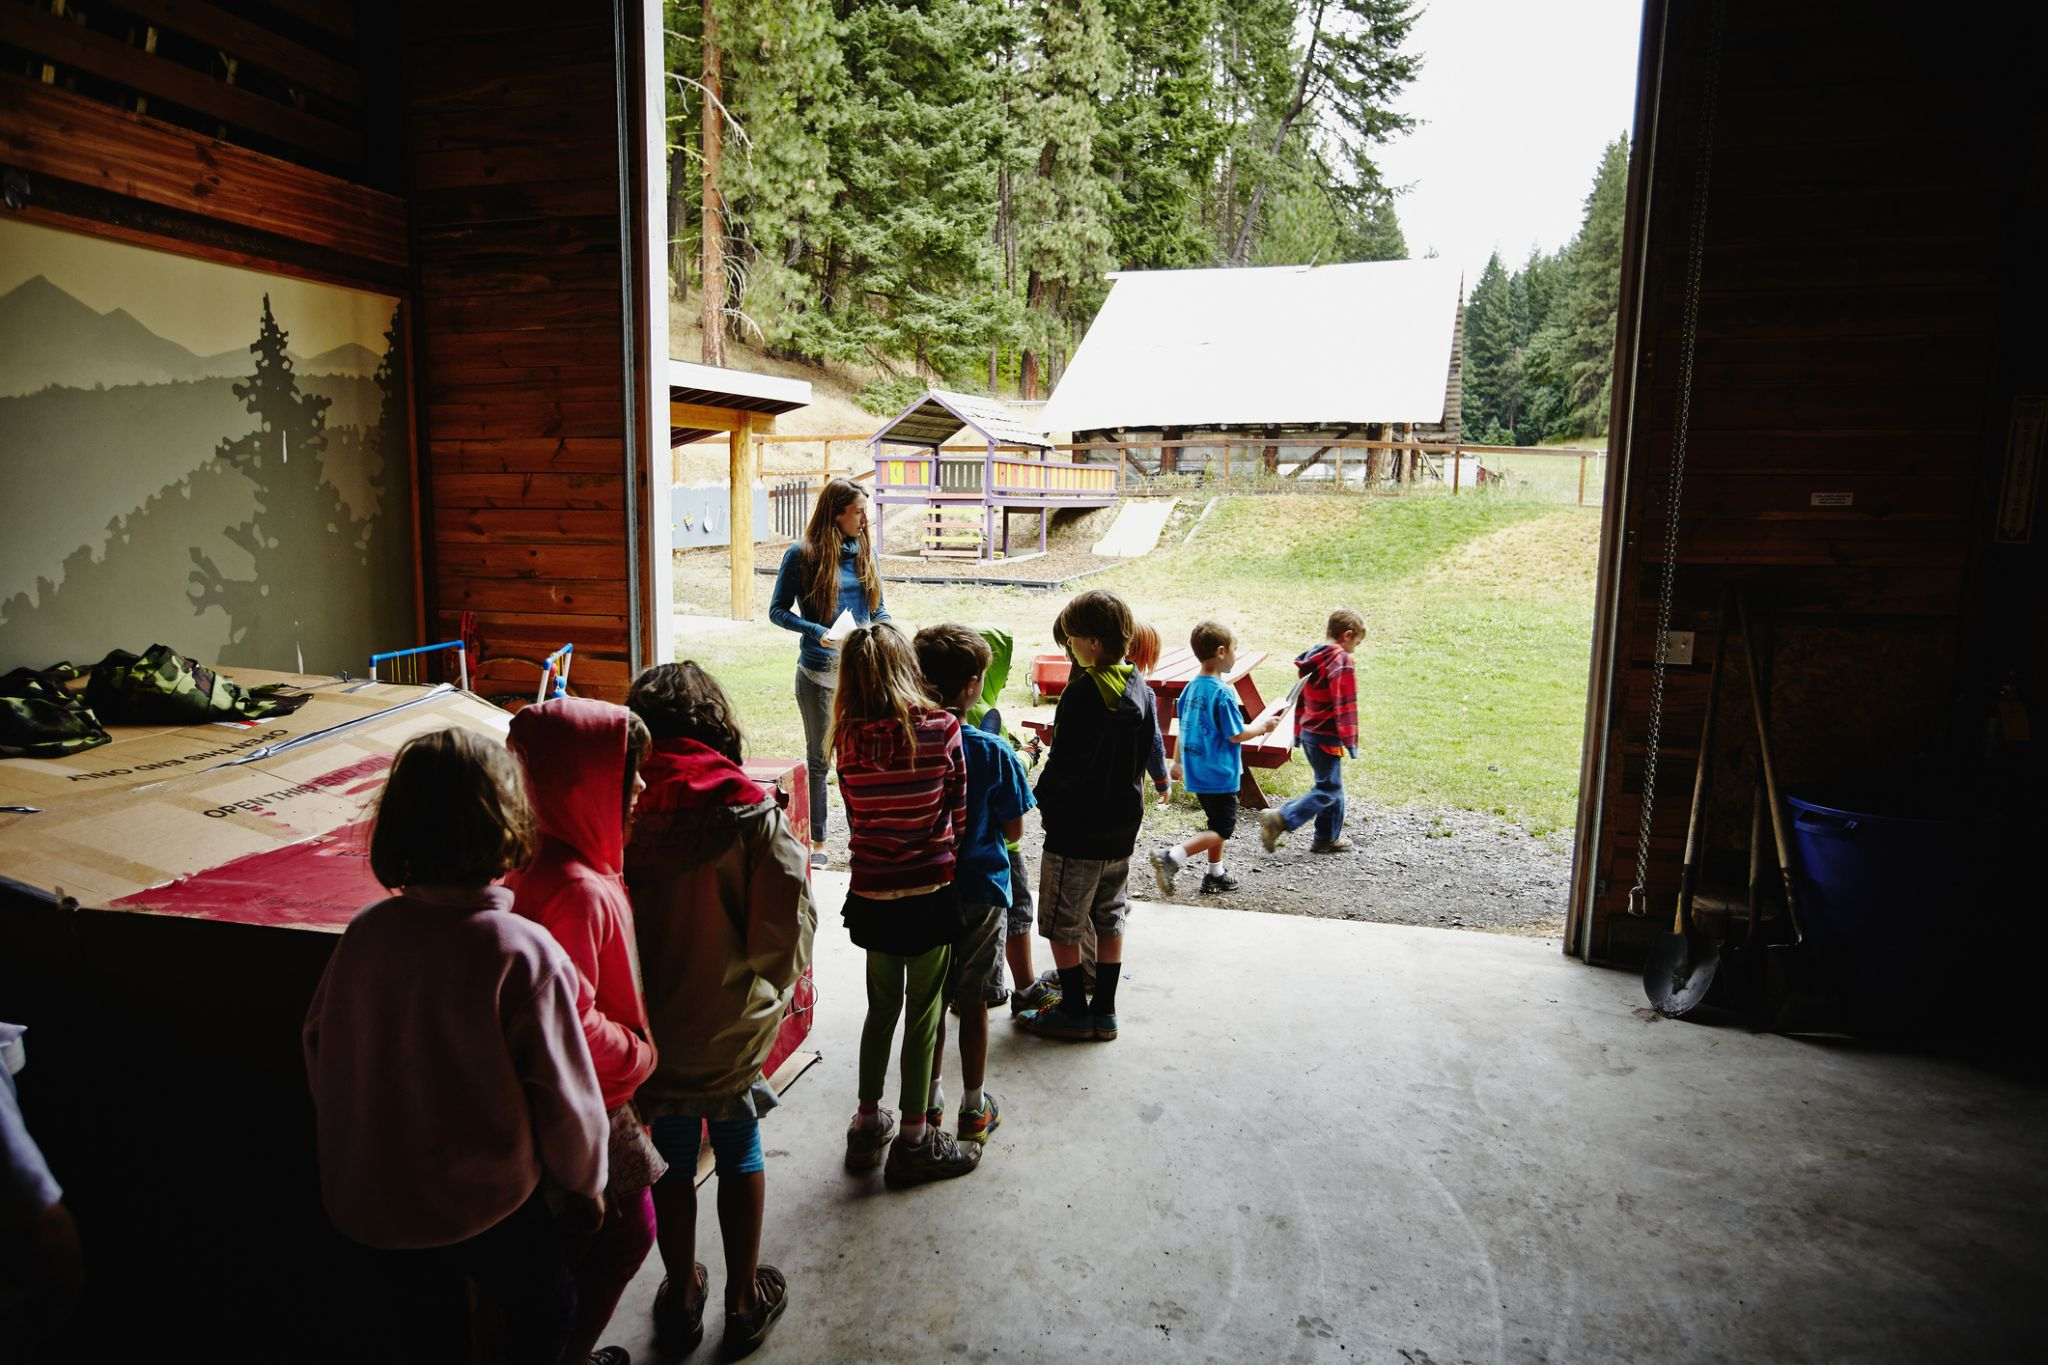 COVID outbreak at Columbia County summer camp - Times Union